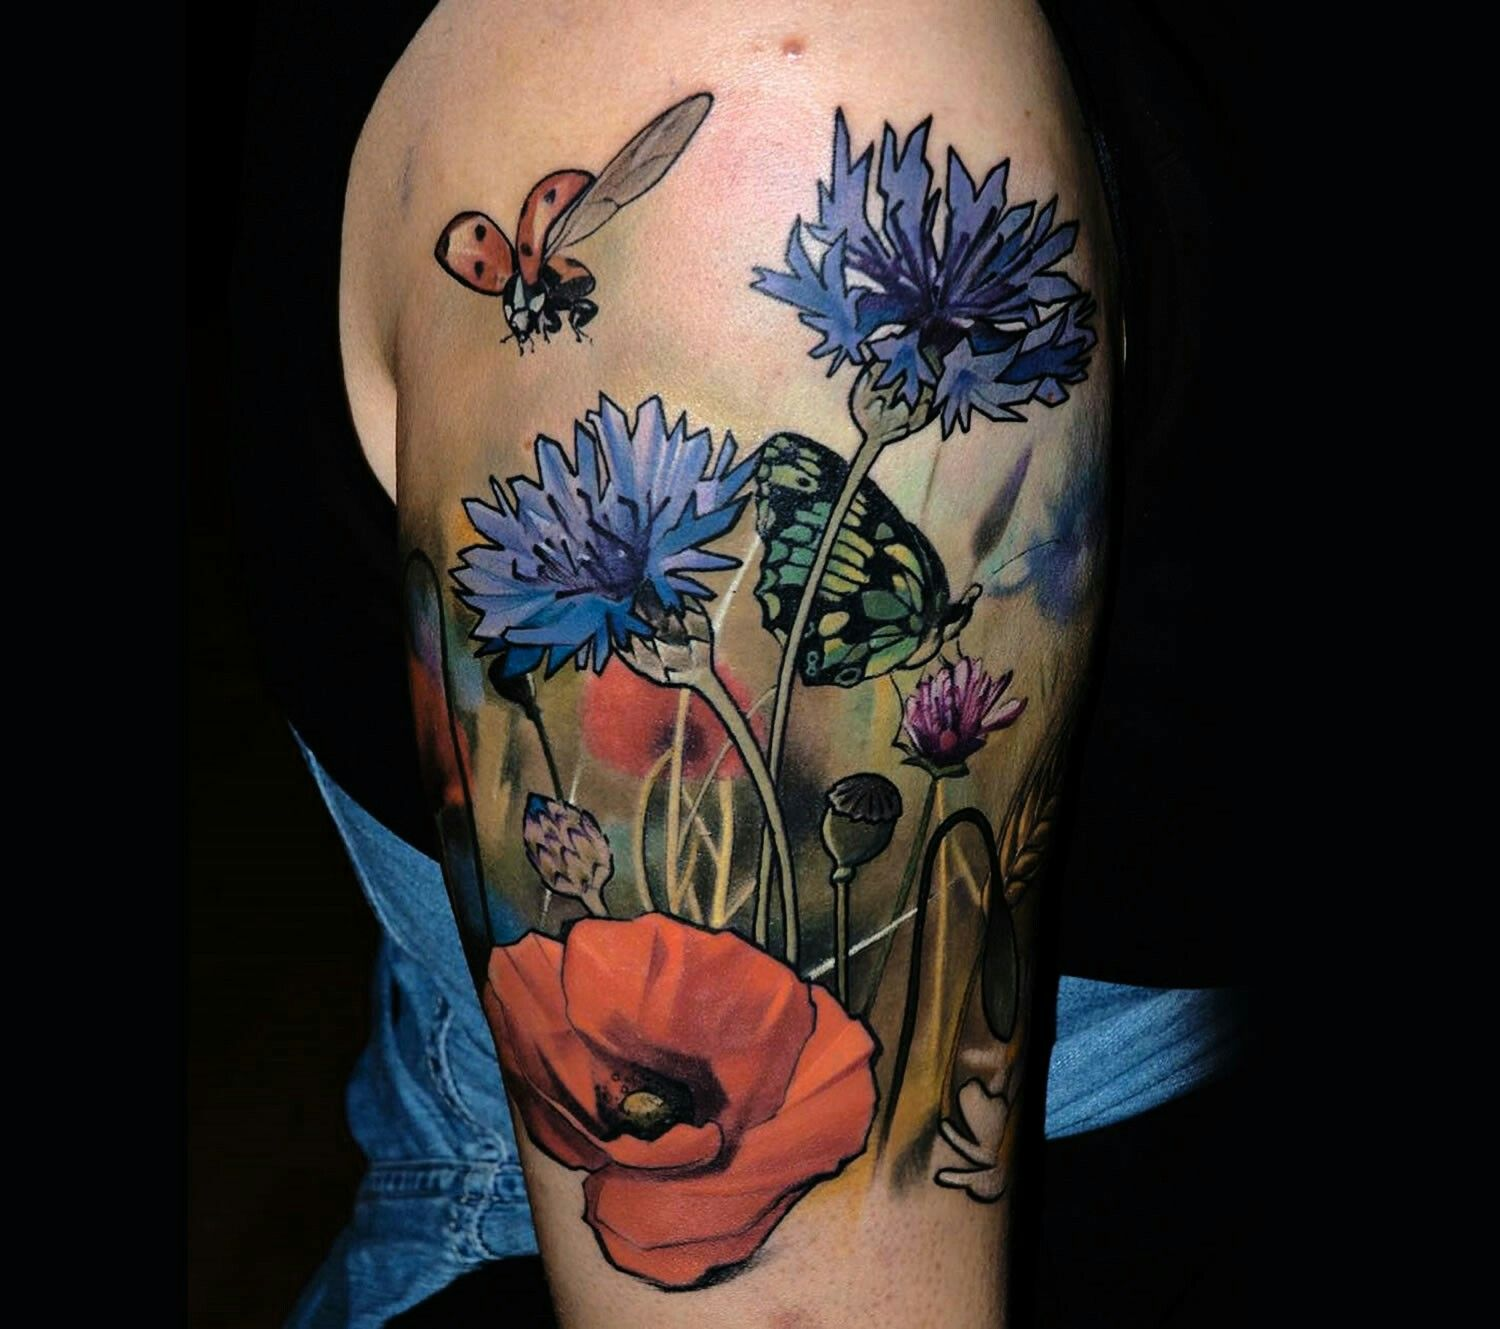 Pin by Dawn Marshall on Body Art (With images) Neo